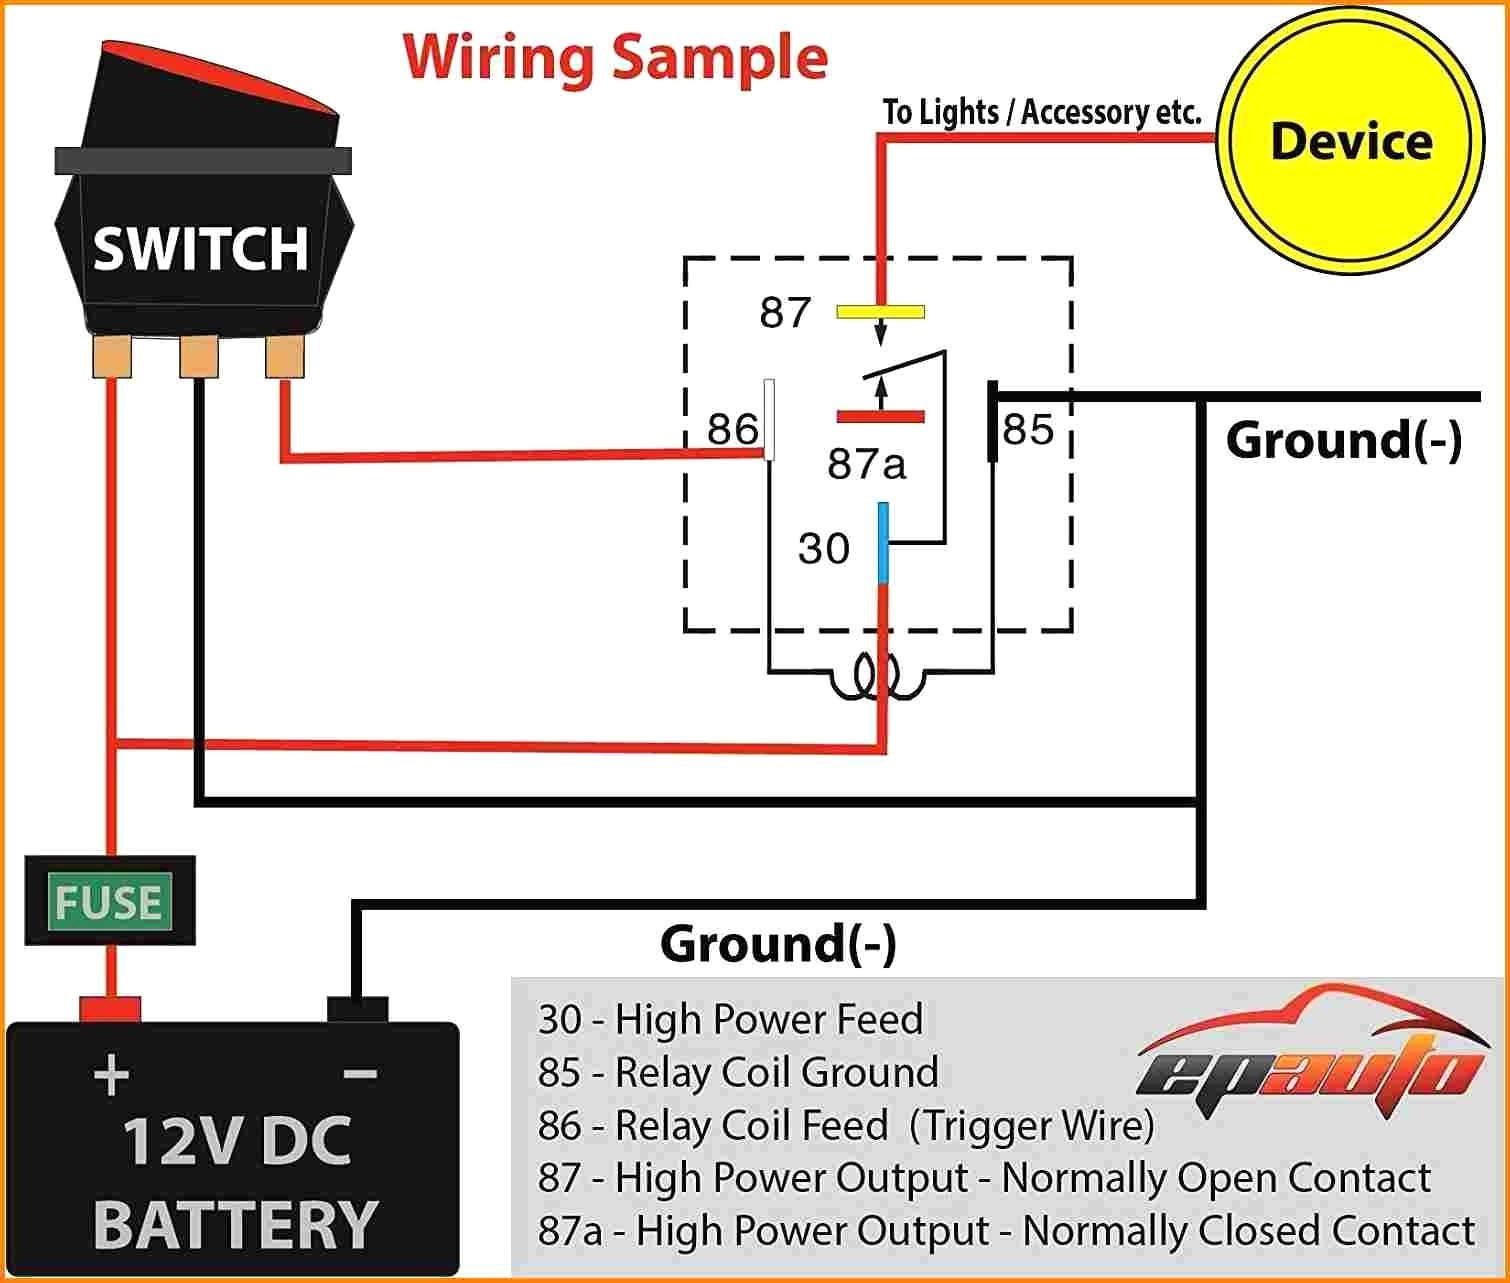 diagram] hid 5 pin relay wiring diagram full version hd quality wiring  diagram - ddwiring.les-cafes-deric-orleans.fr  best diagram database